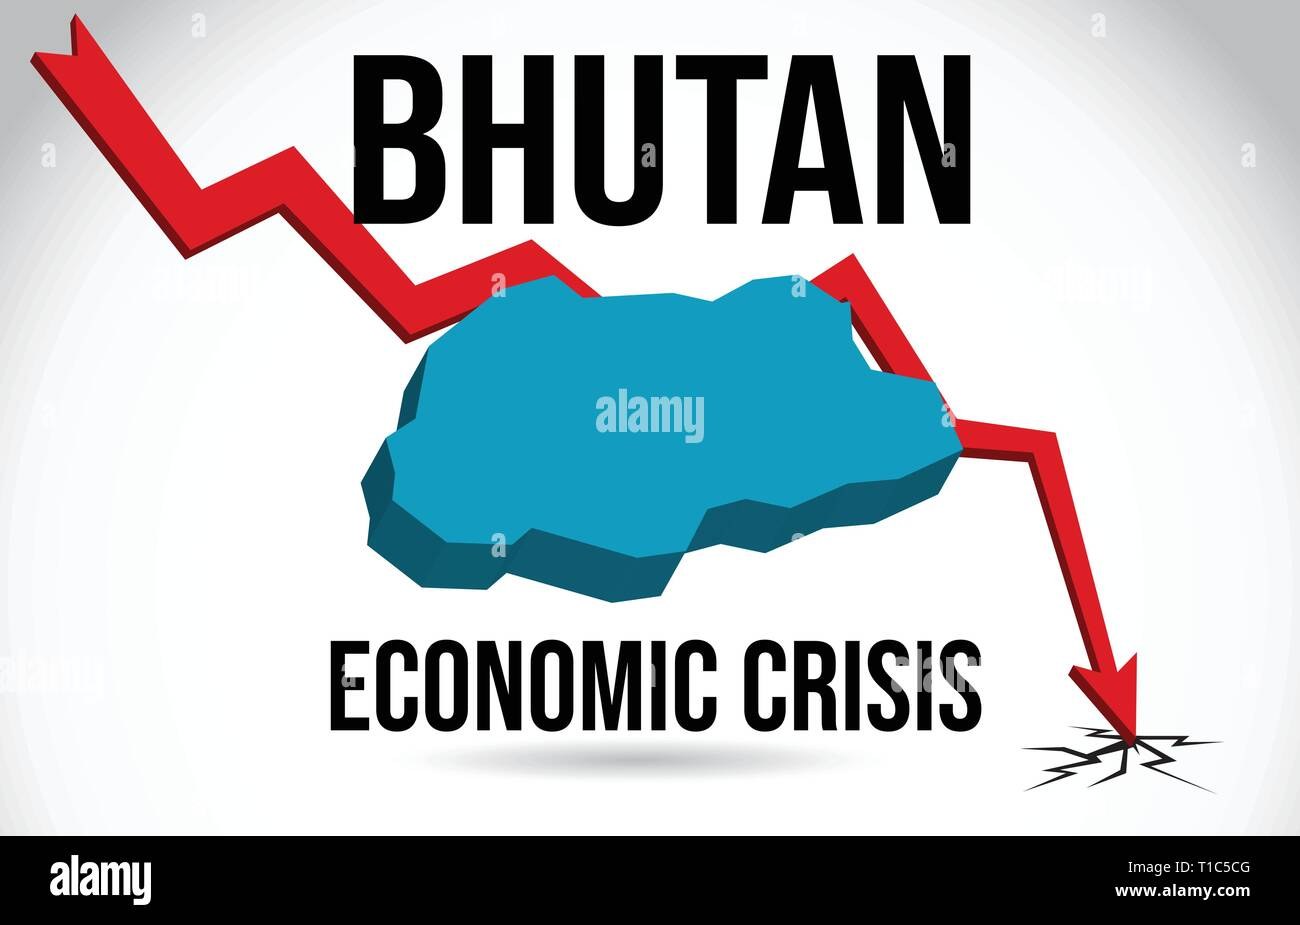 Bhutan Map Financial Crisis Economic Collapse Market Crash Global Meltdown Vector Illustration. - Stock Vector